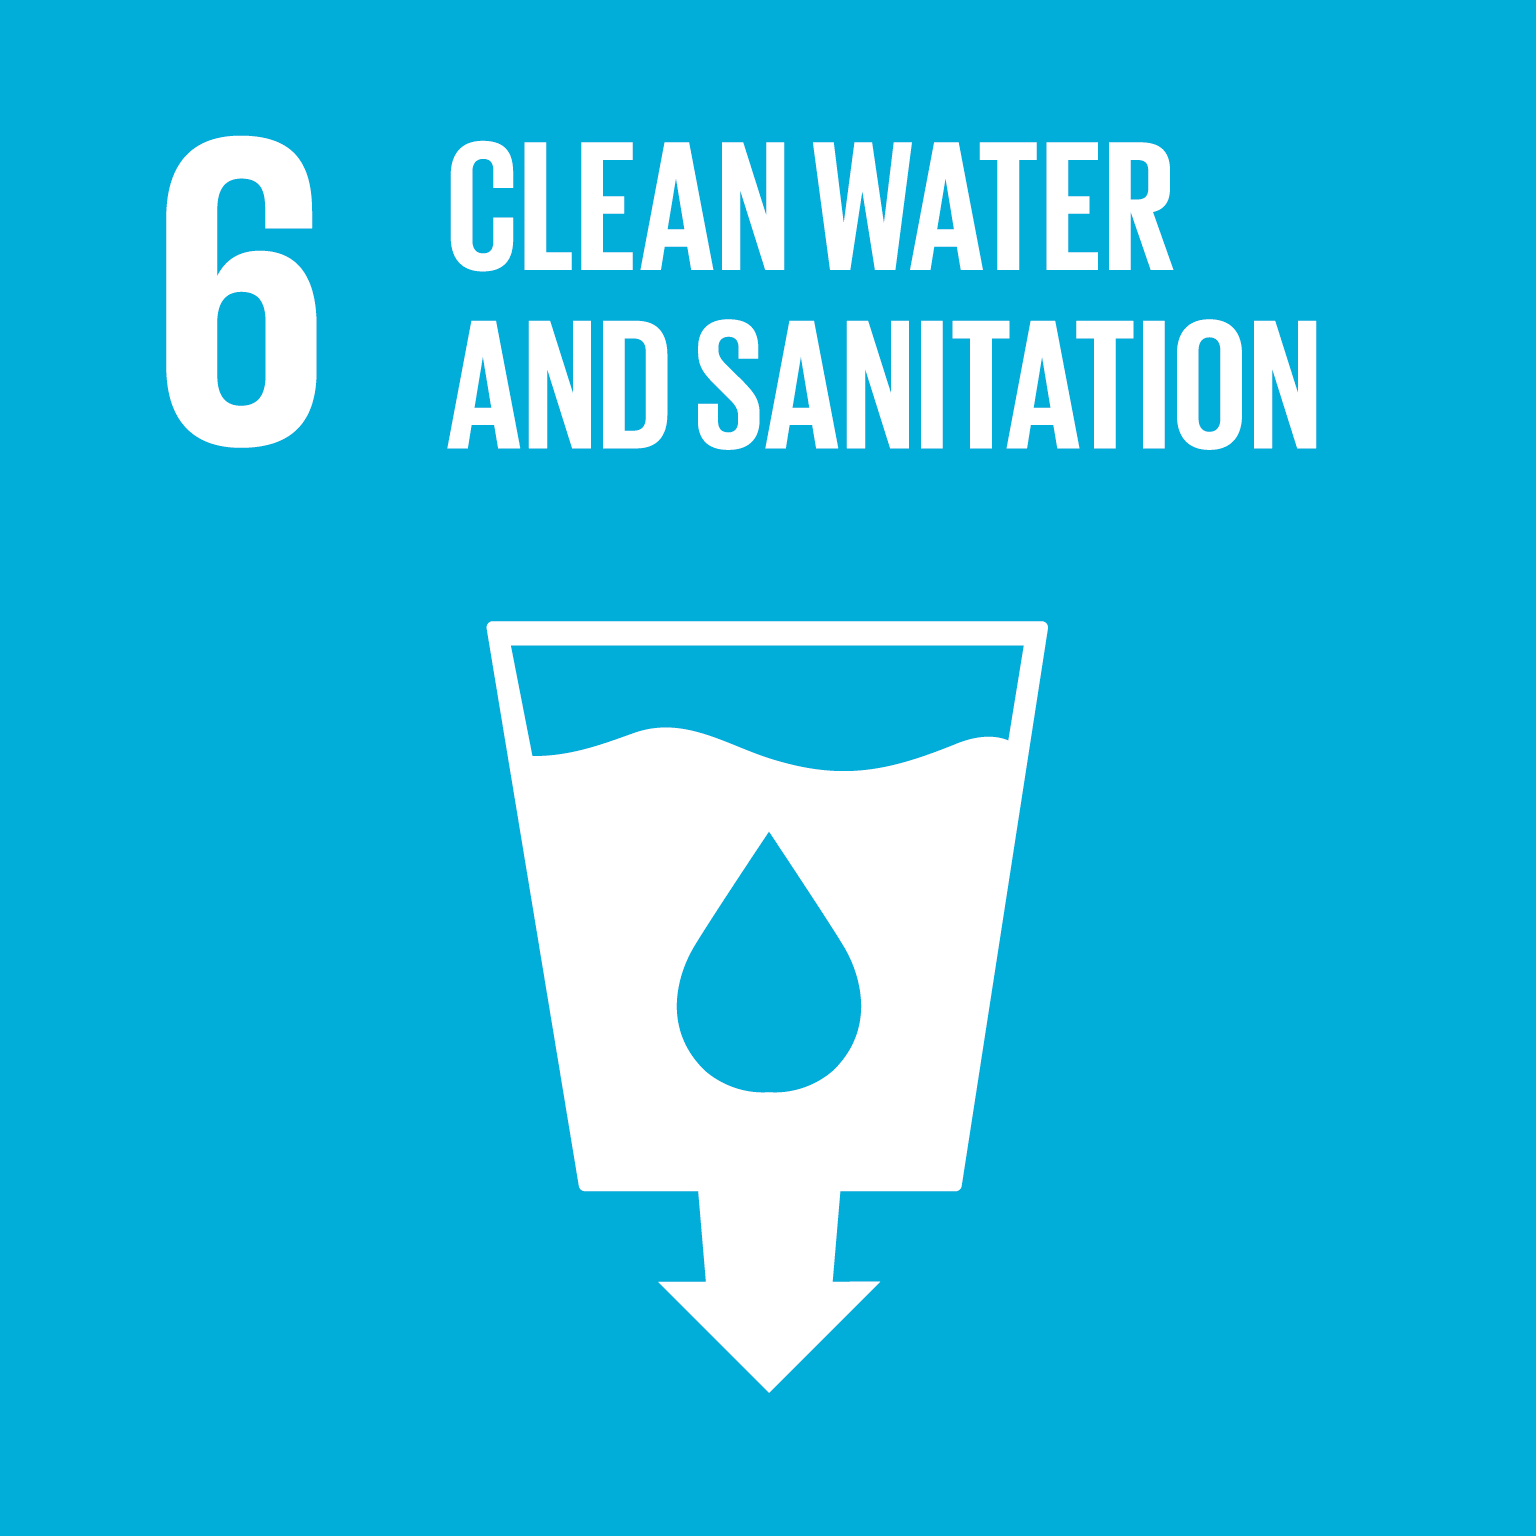 SDG Goal 6 'Clean water and sanitation' © UN